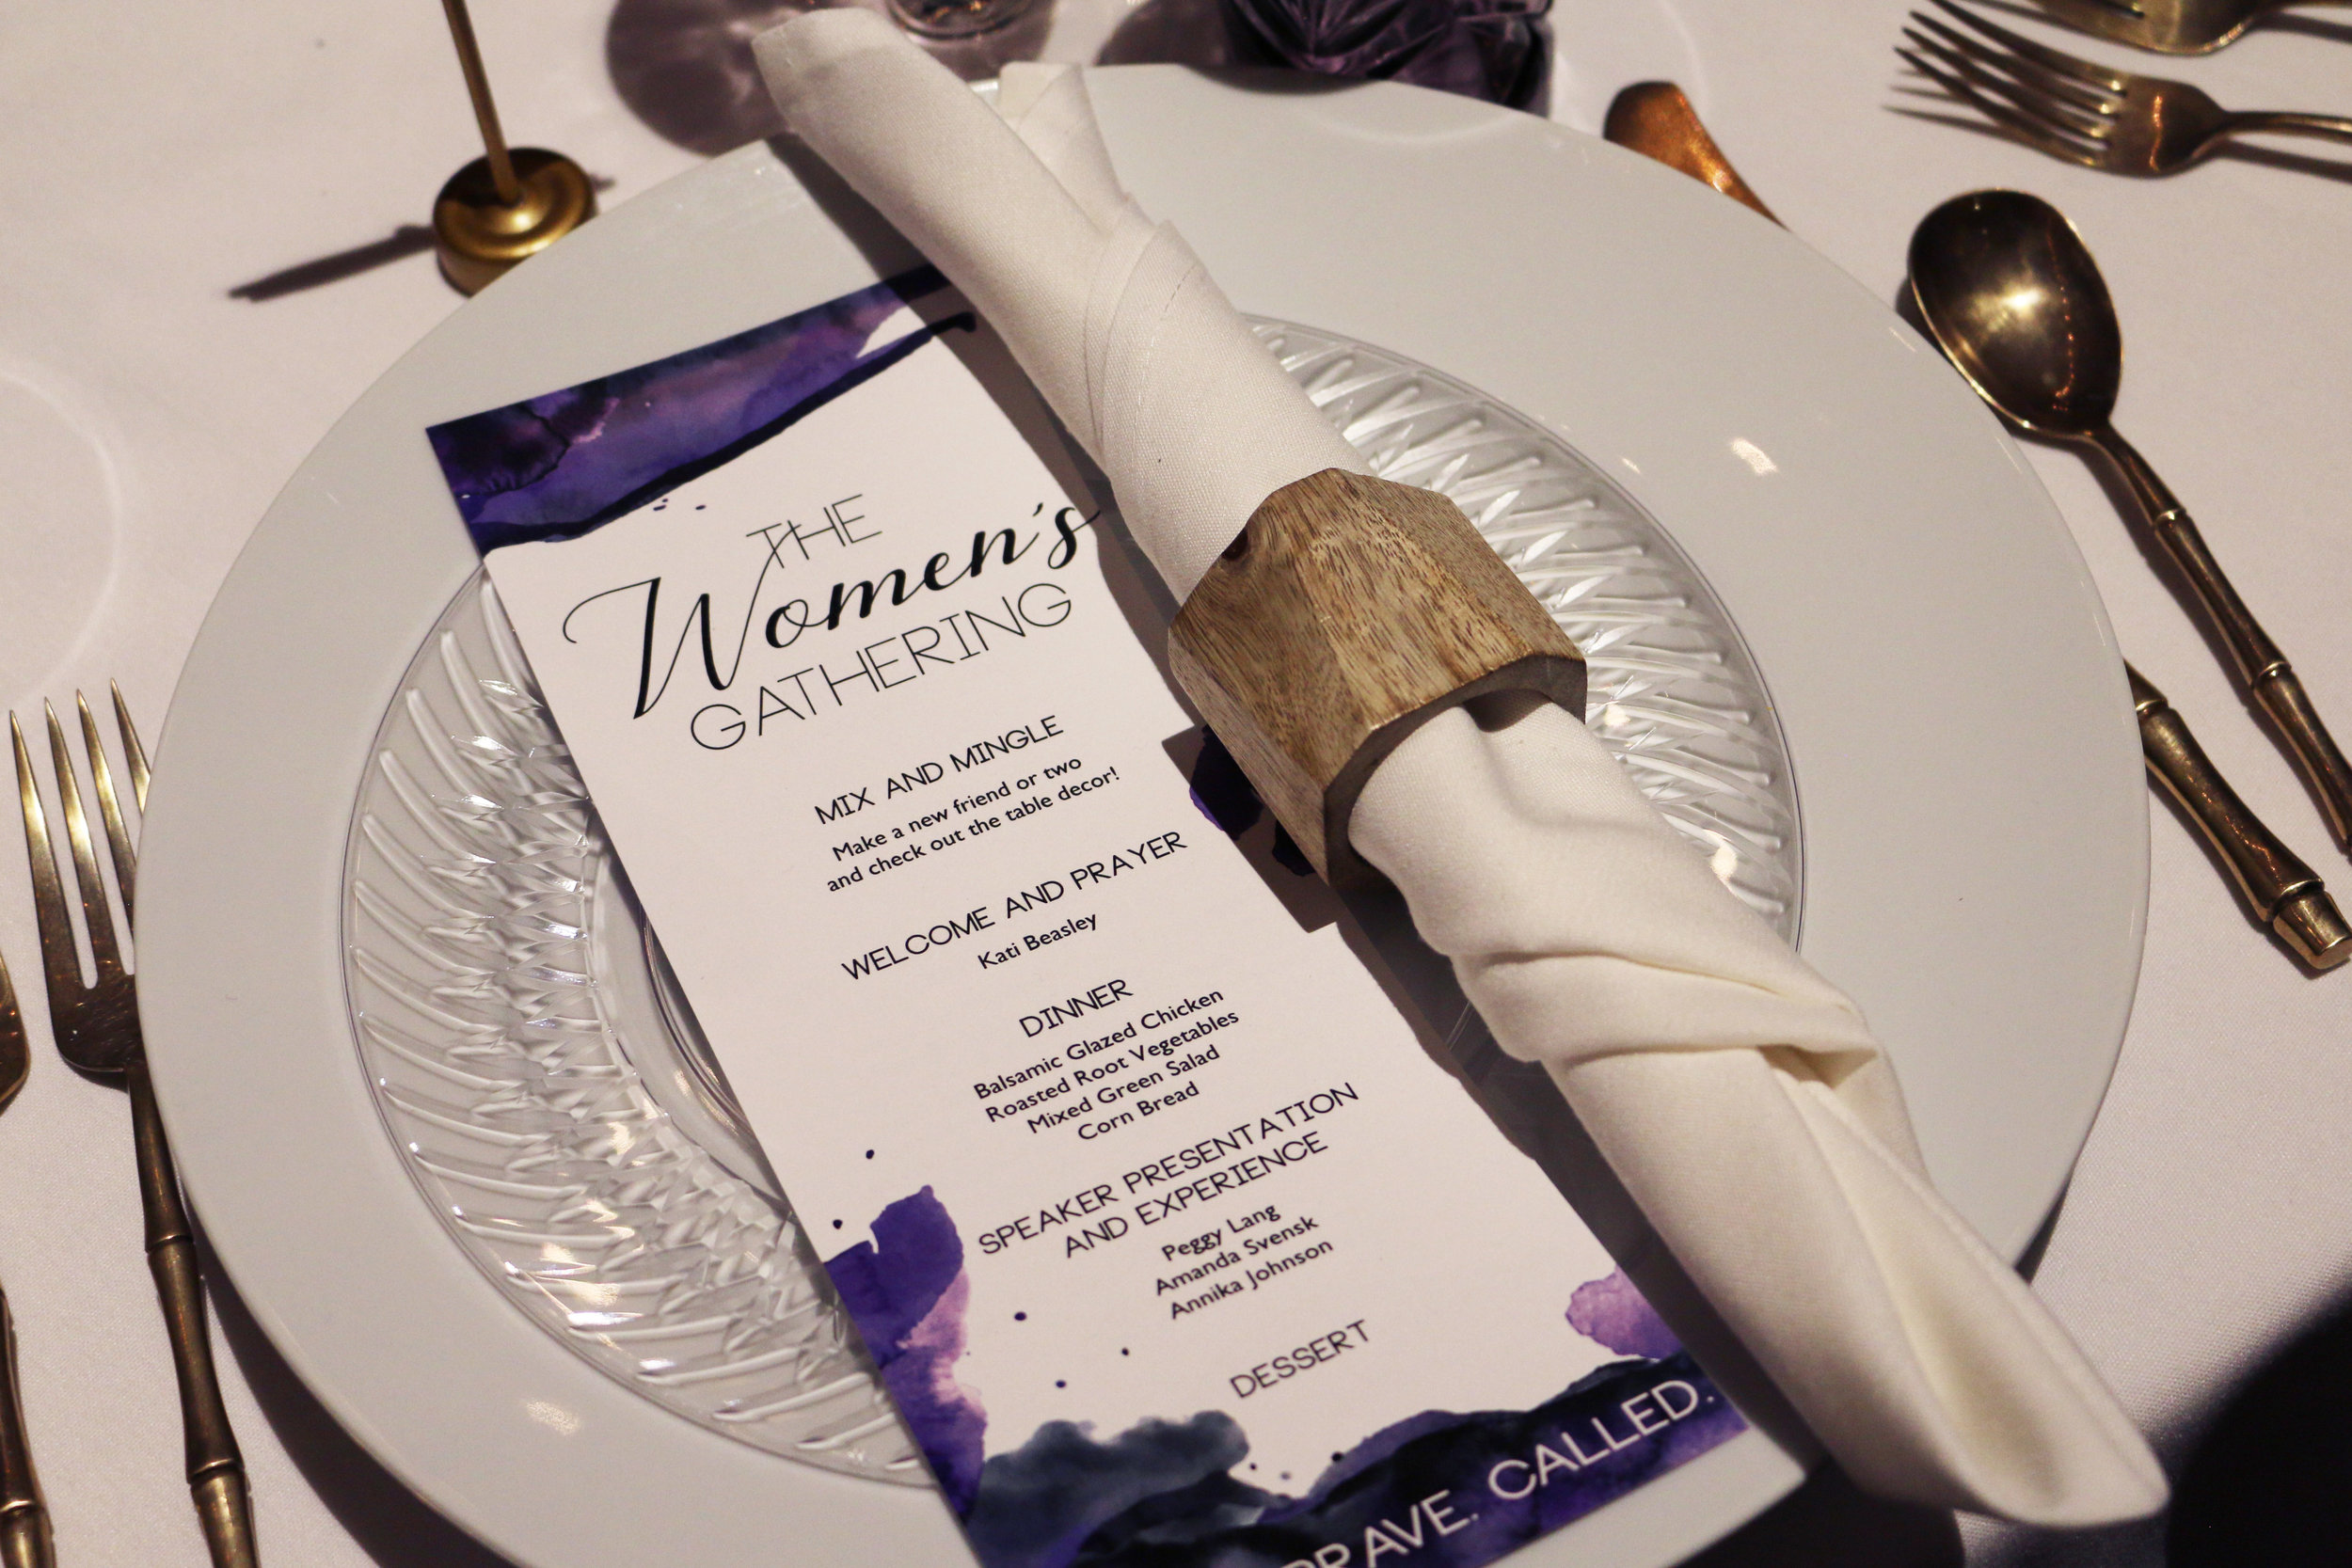 Event Suite Design - Invitation, Program, Connection Cards, Table Numbers, Social Media Posts  Event Photography